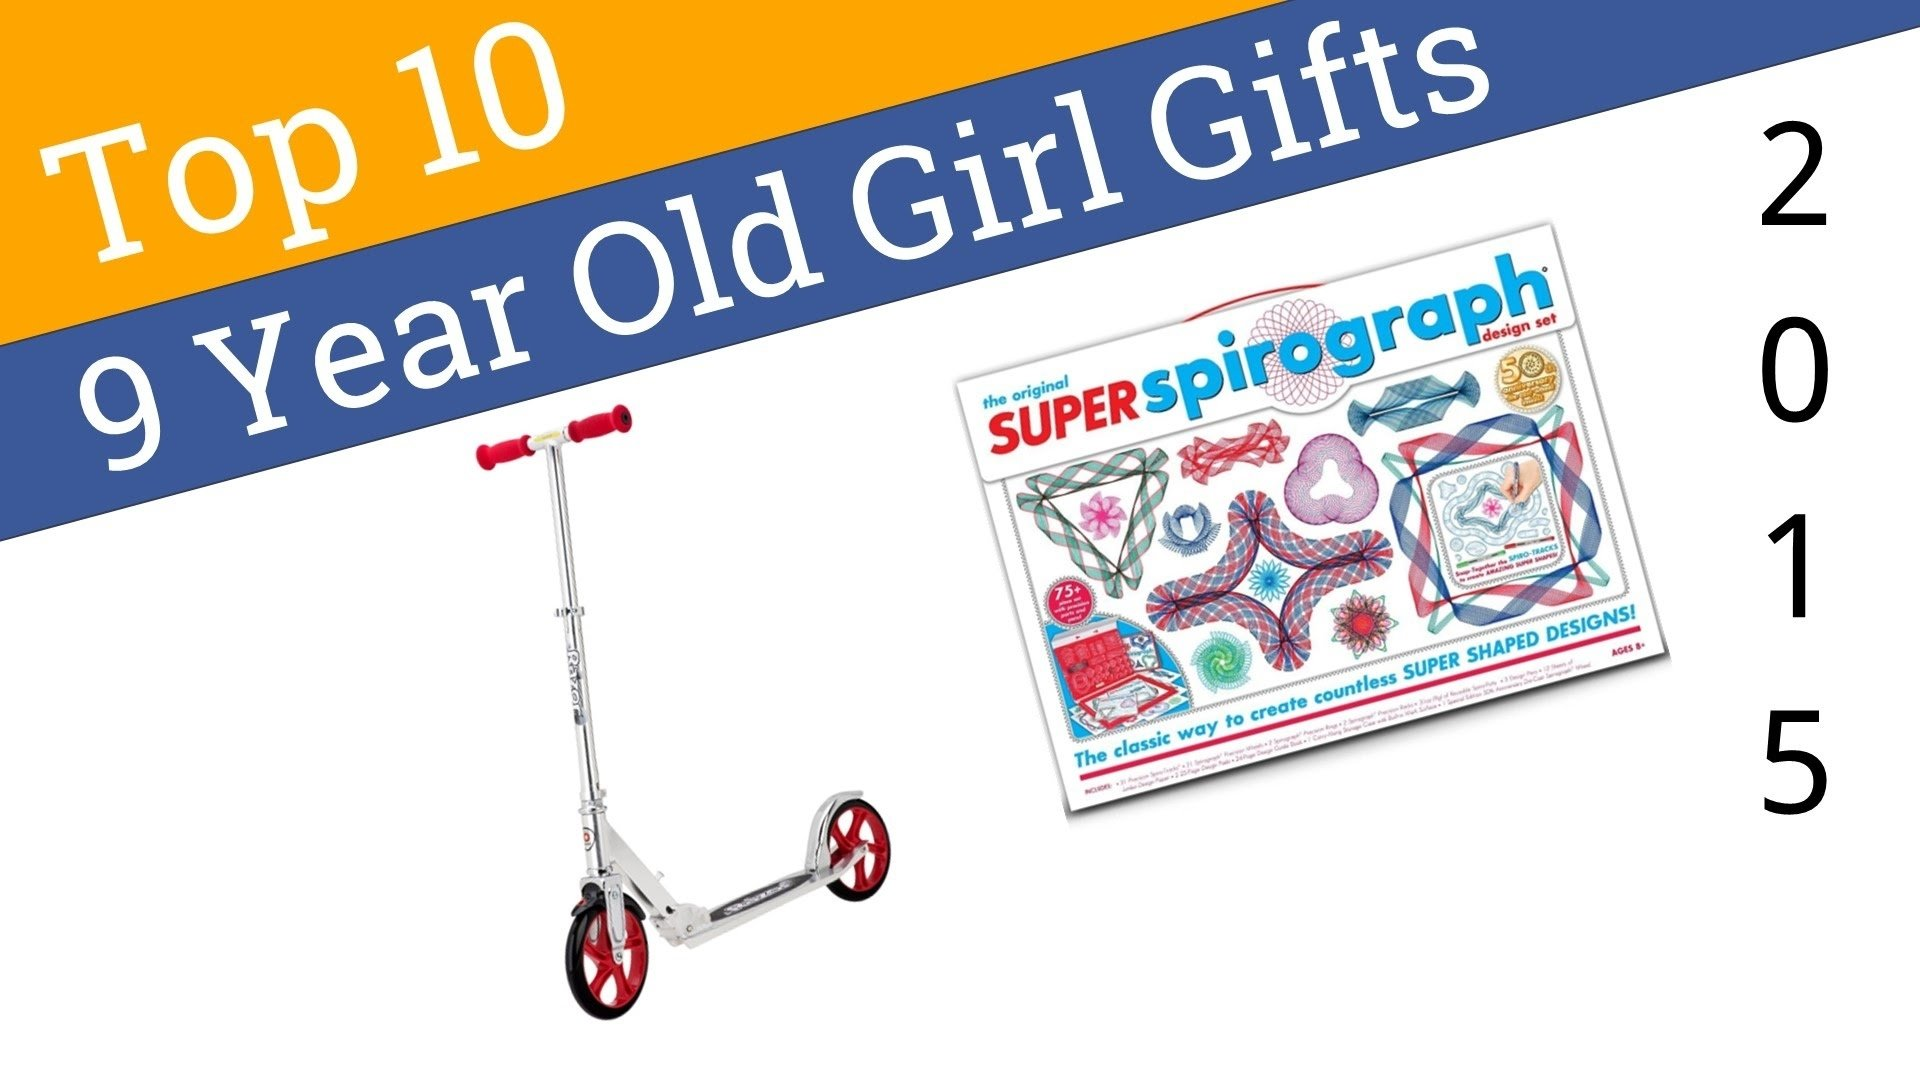 10 Unique Gift Ideas For 9 Year Old Girl 10 best 9 year old girl gifts 2015 youtube